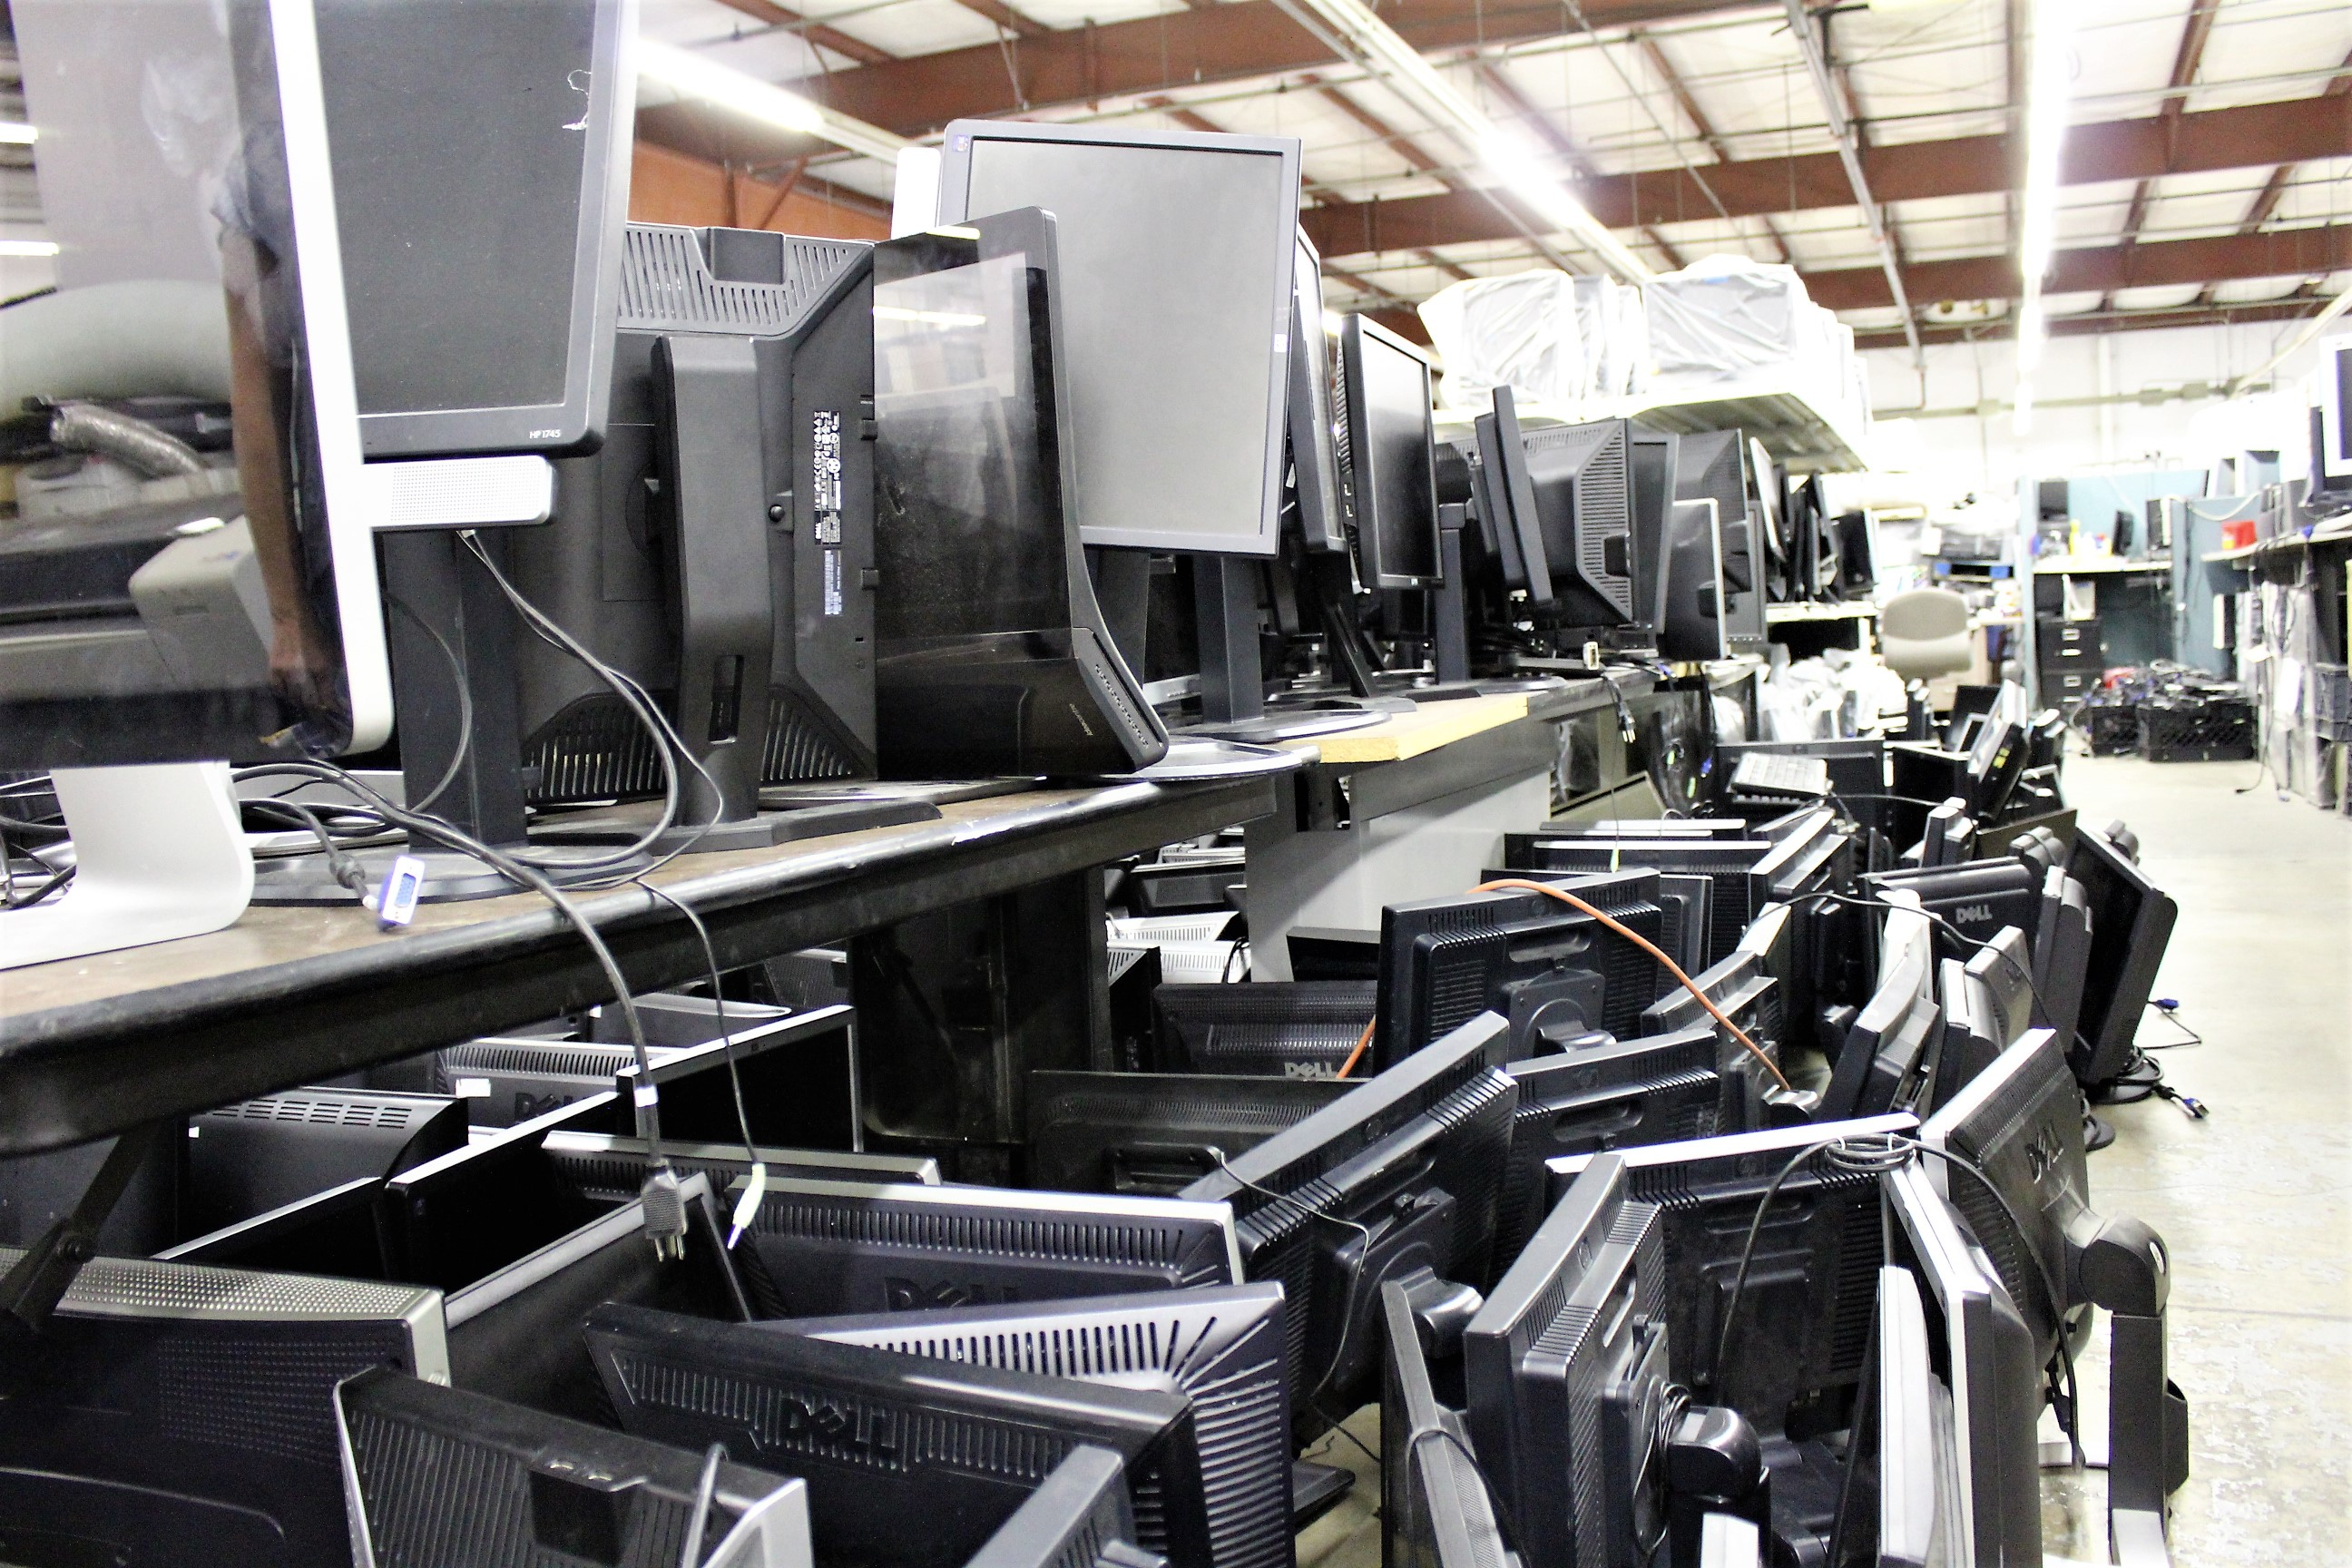 sea of monitors